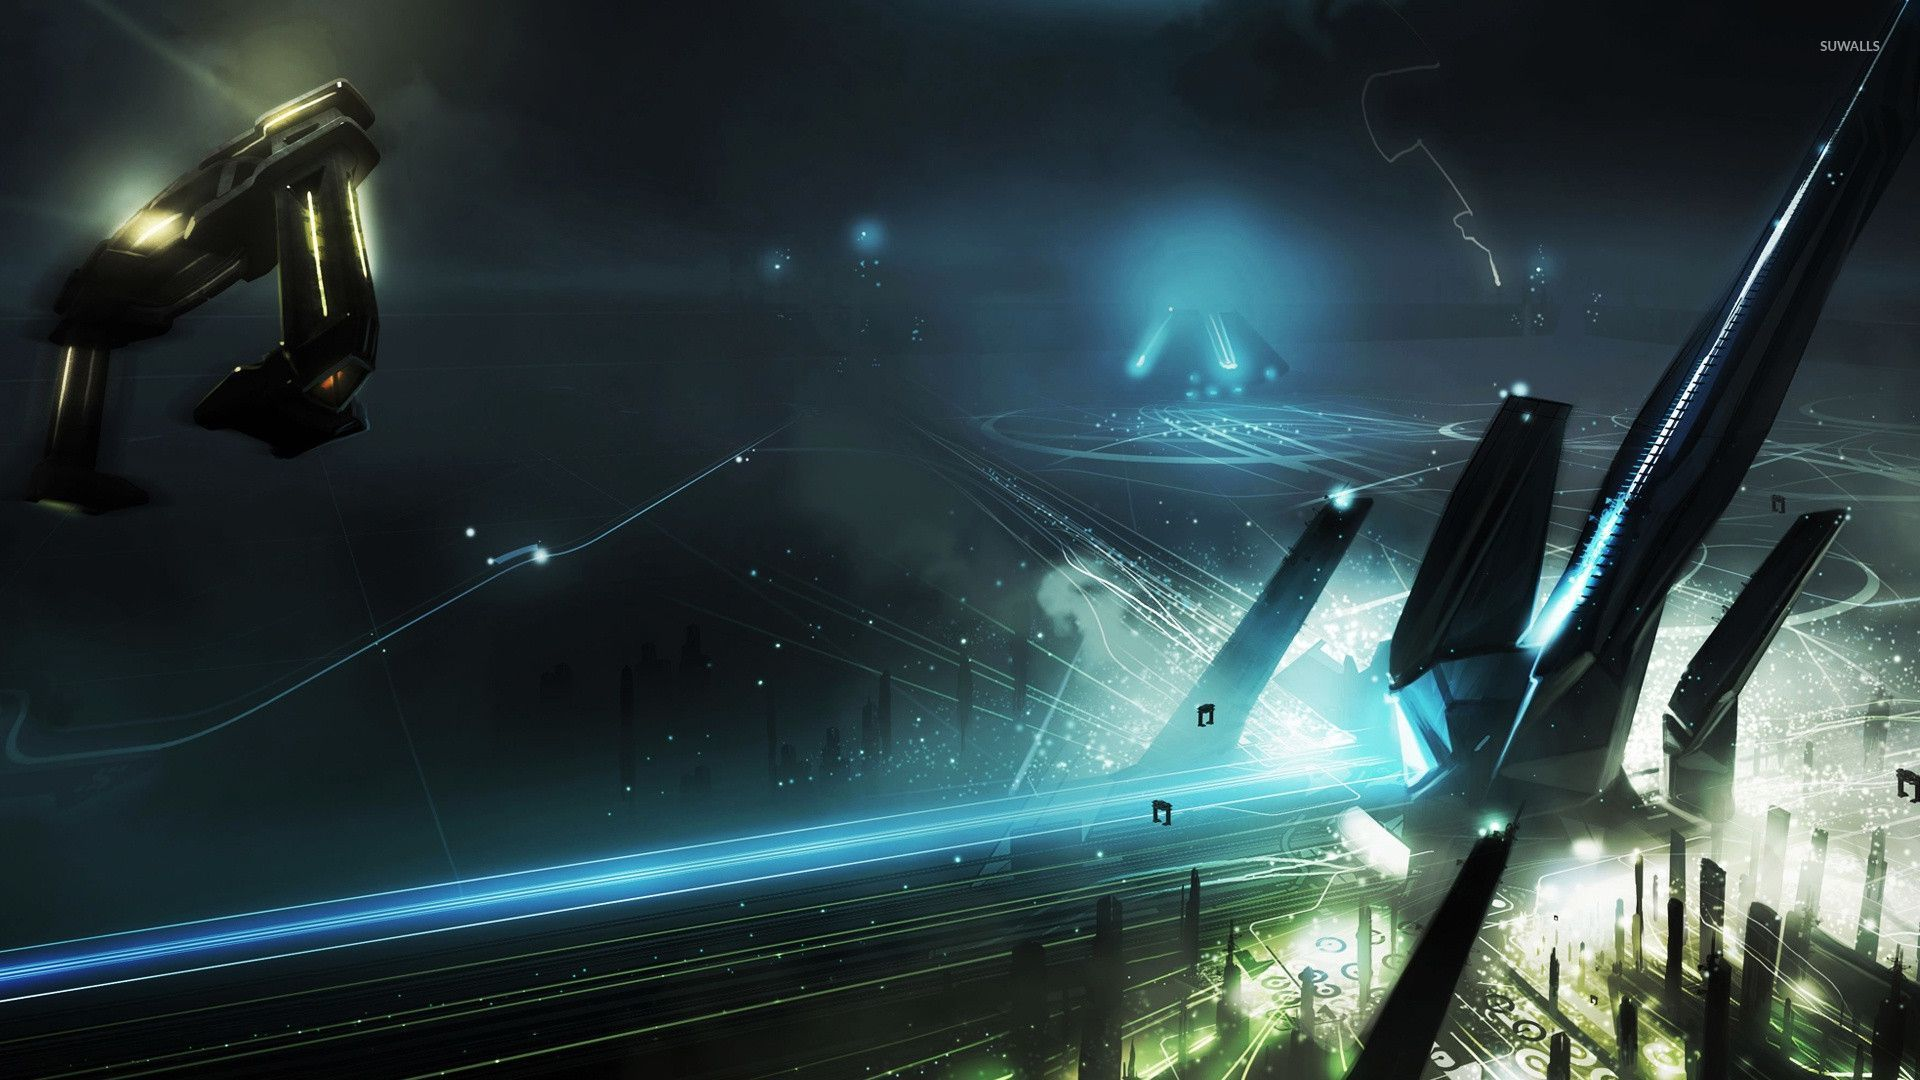 tron legacy [4] wallpaper - movie wallpapers - #29310